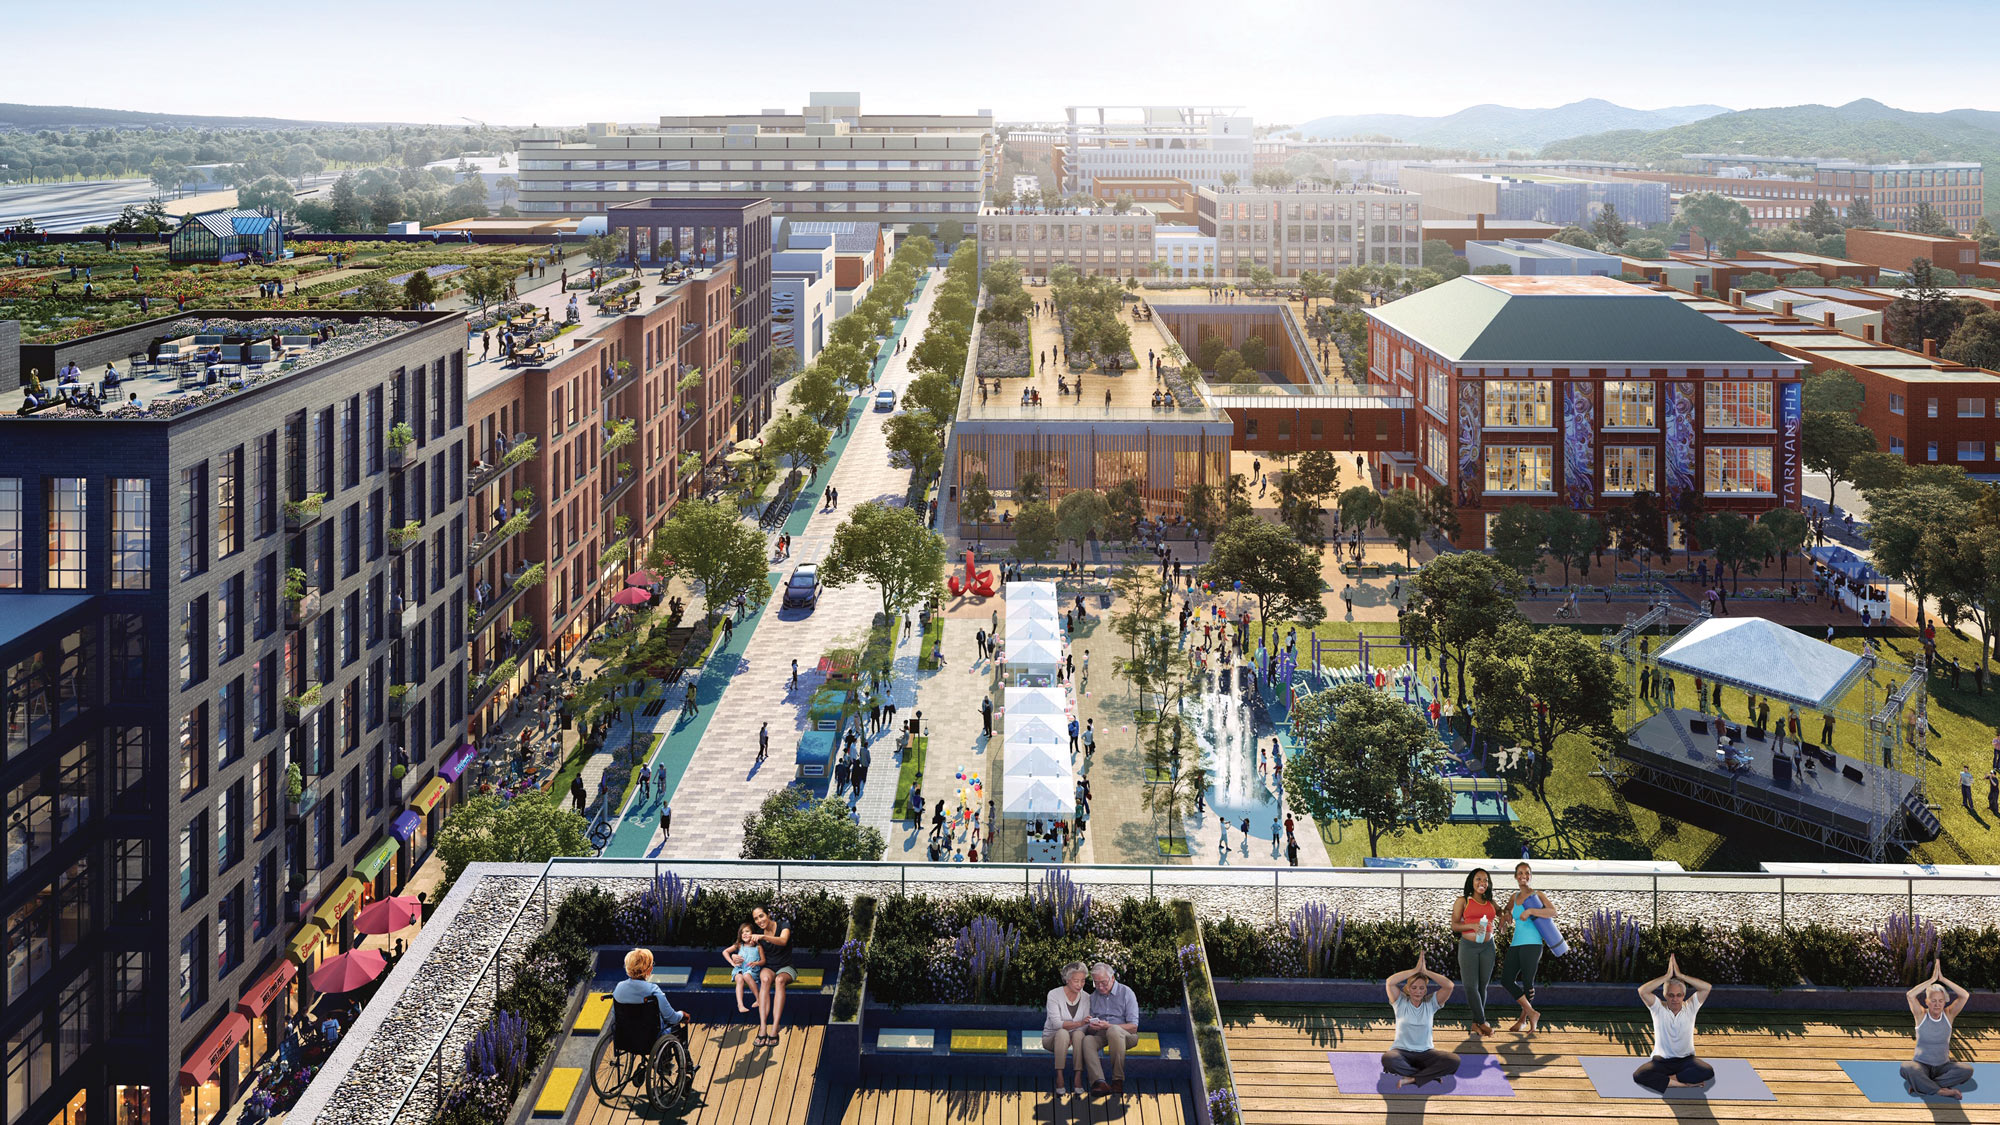 A concept rendering of a mixed-use district in Washington DC, showing a variety of indoor and outdoor spaces and multi-generational users.